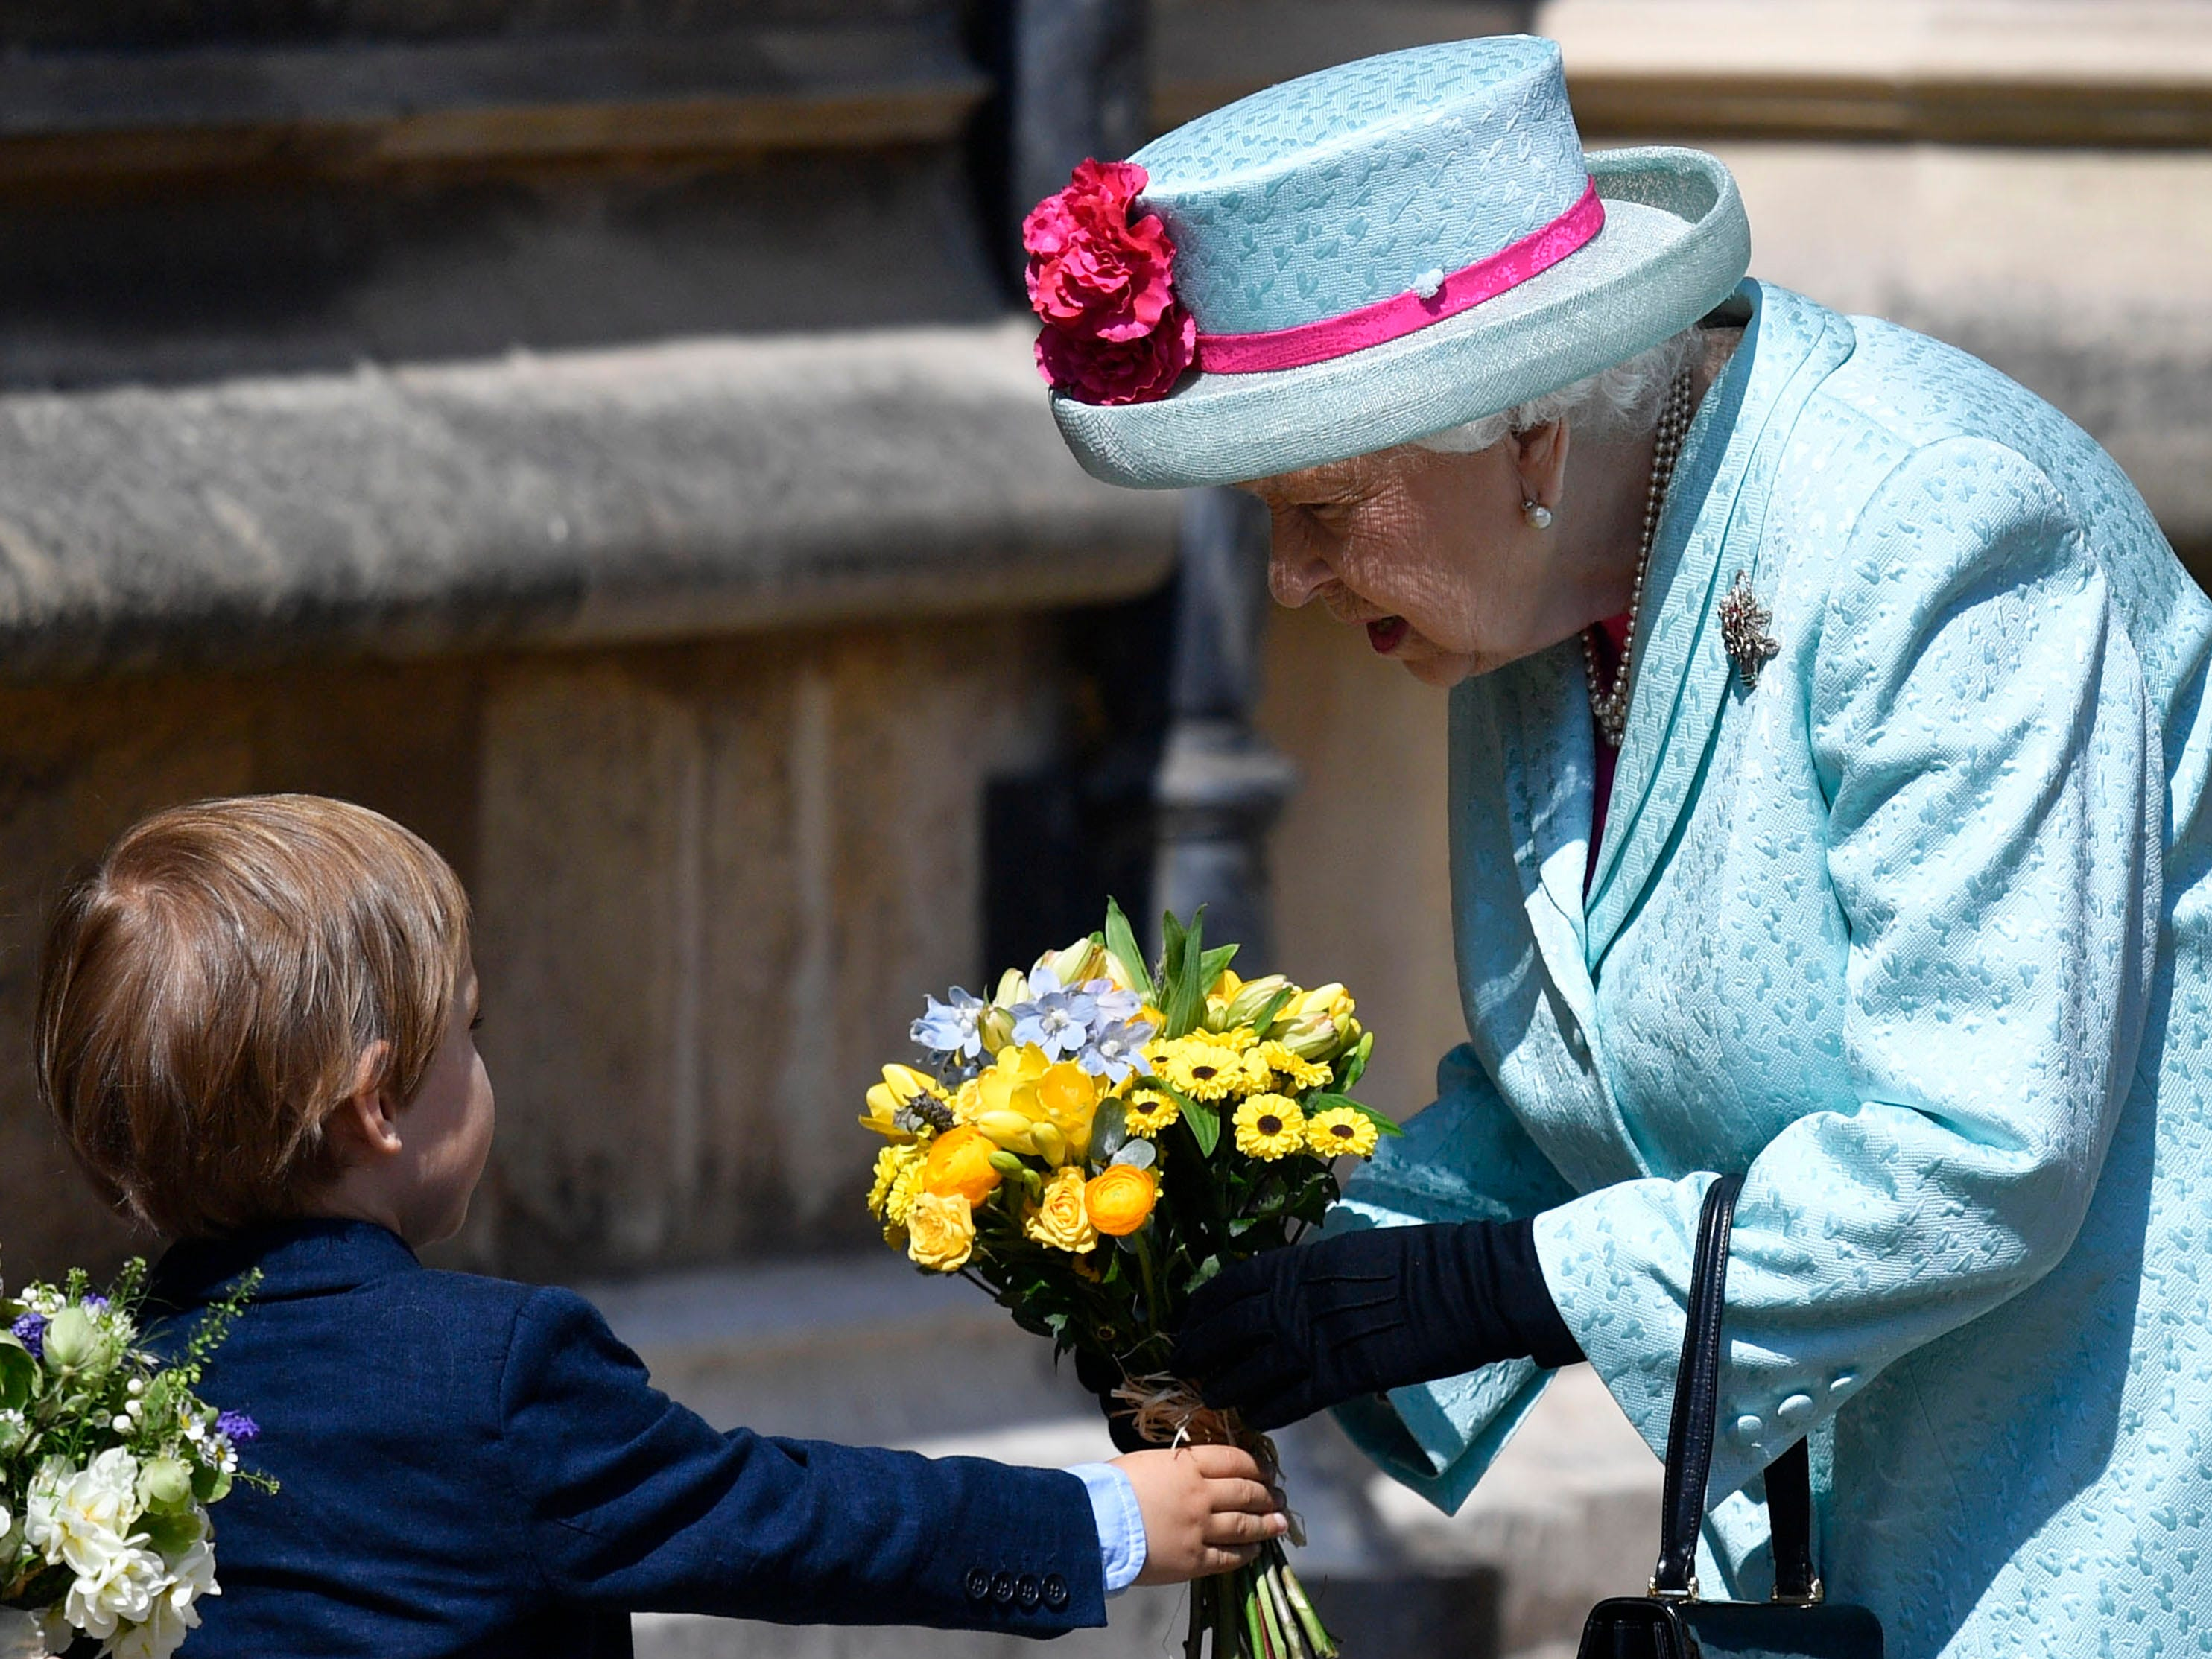 Queen Elizabeth receives flowers from a child as she leaves the annual Easter Sunday Service at St Georges Chapel in Windsor Castle on April 21, 2019. This year the service falls on the Queen's Elizabeth II birthday, who turns 93.